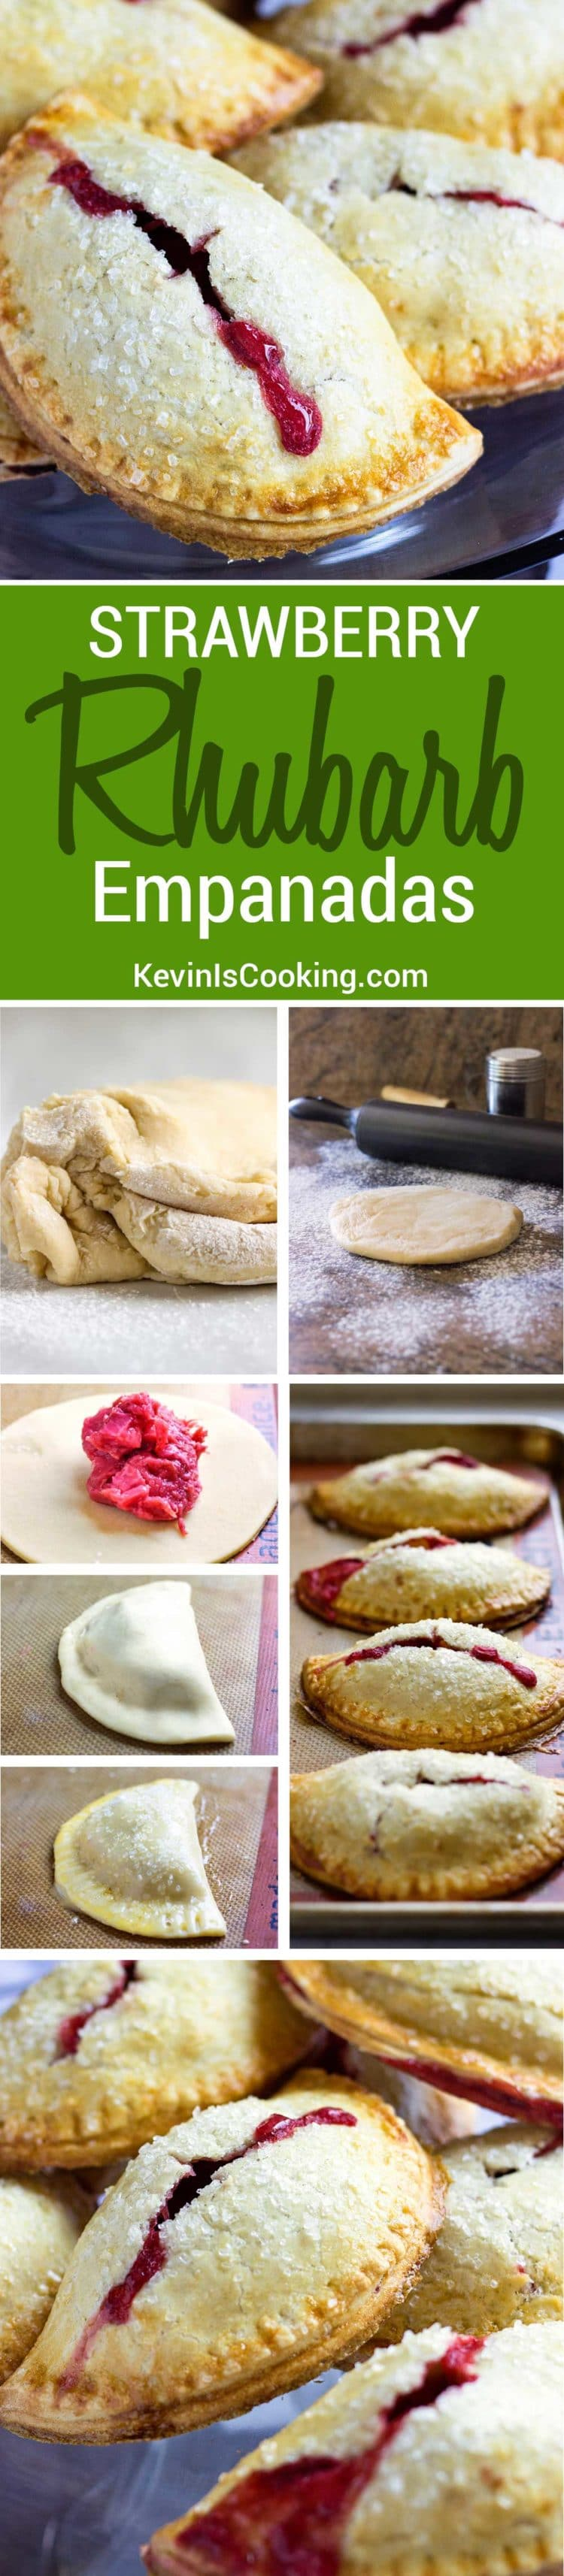 These Rhubarb Baked Empanadas are baked, not fried and the lightly sweet, flakey dough is just perfect to hold the chopped rhubarb and strawberries. Perfect for the kids and picnics.